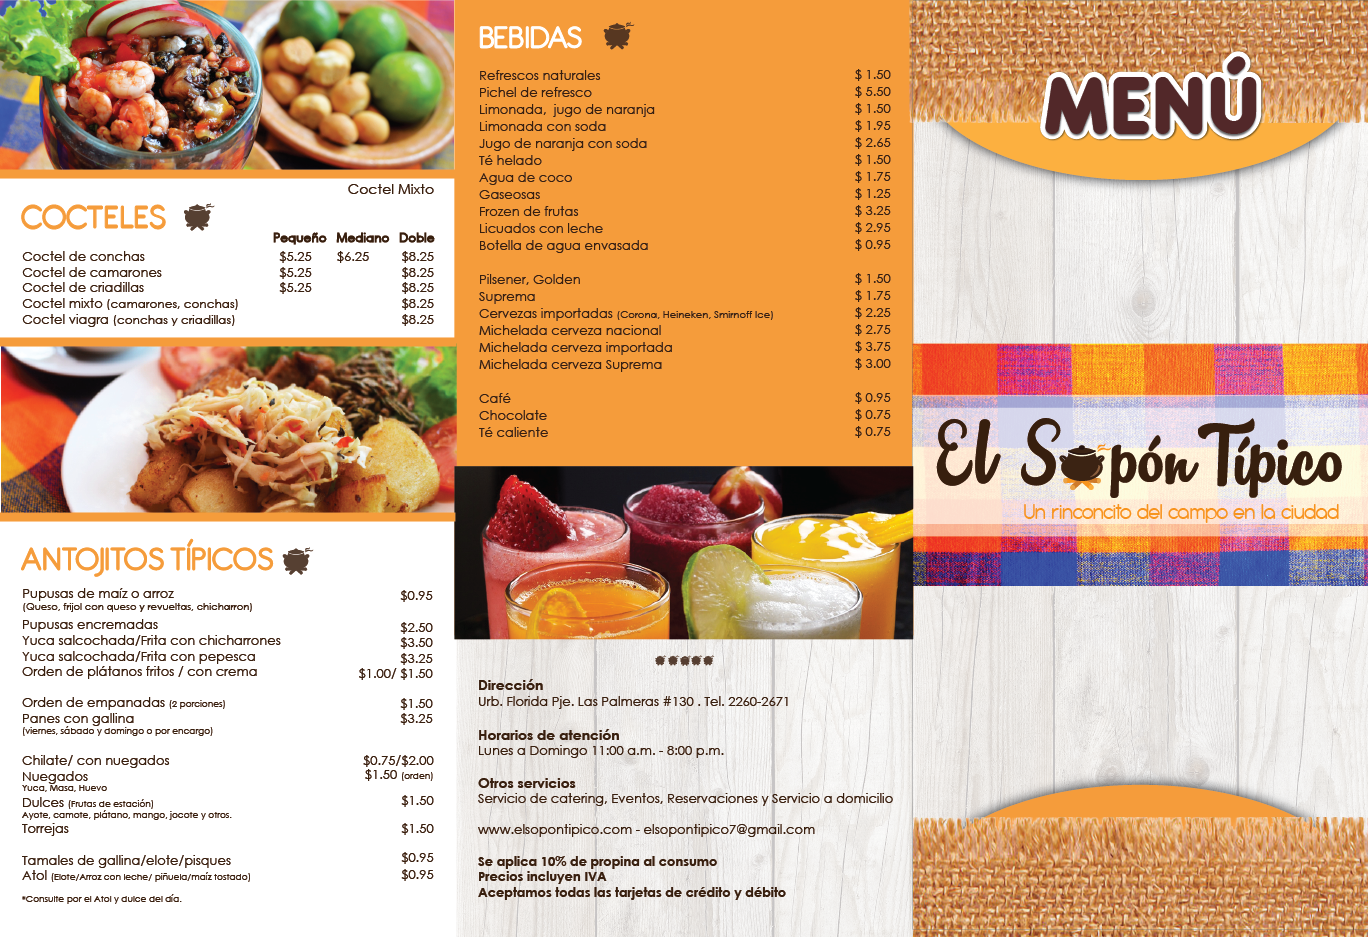 El menu y la comida pictures to pin on pinterest pinsdaddy for Menu comida